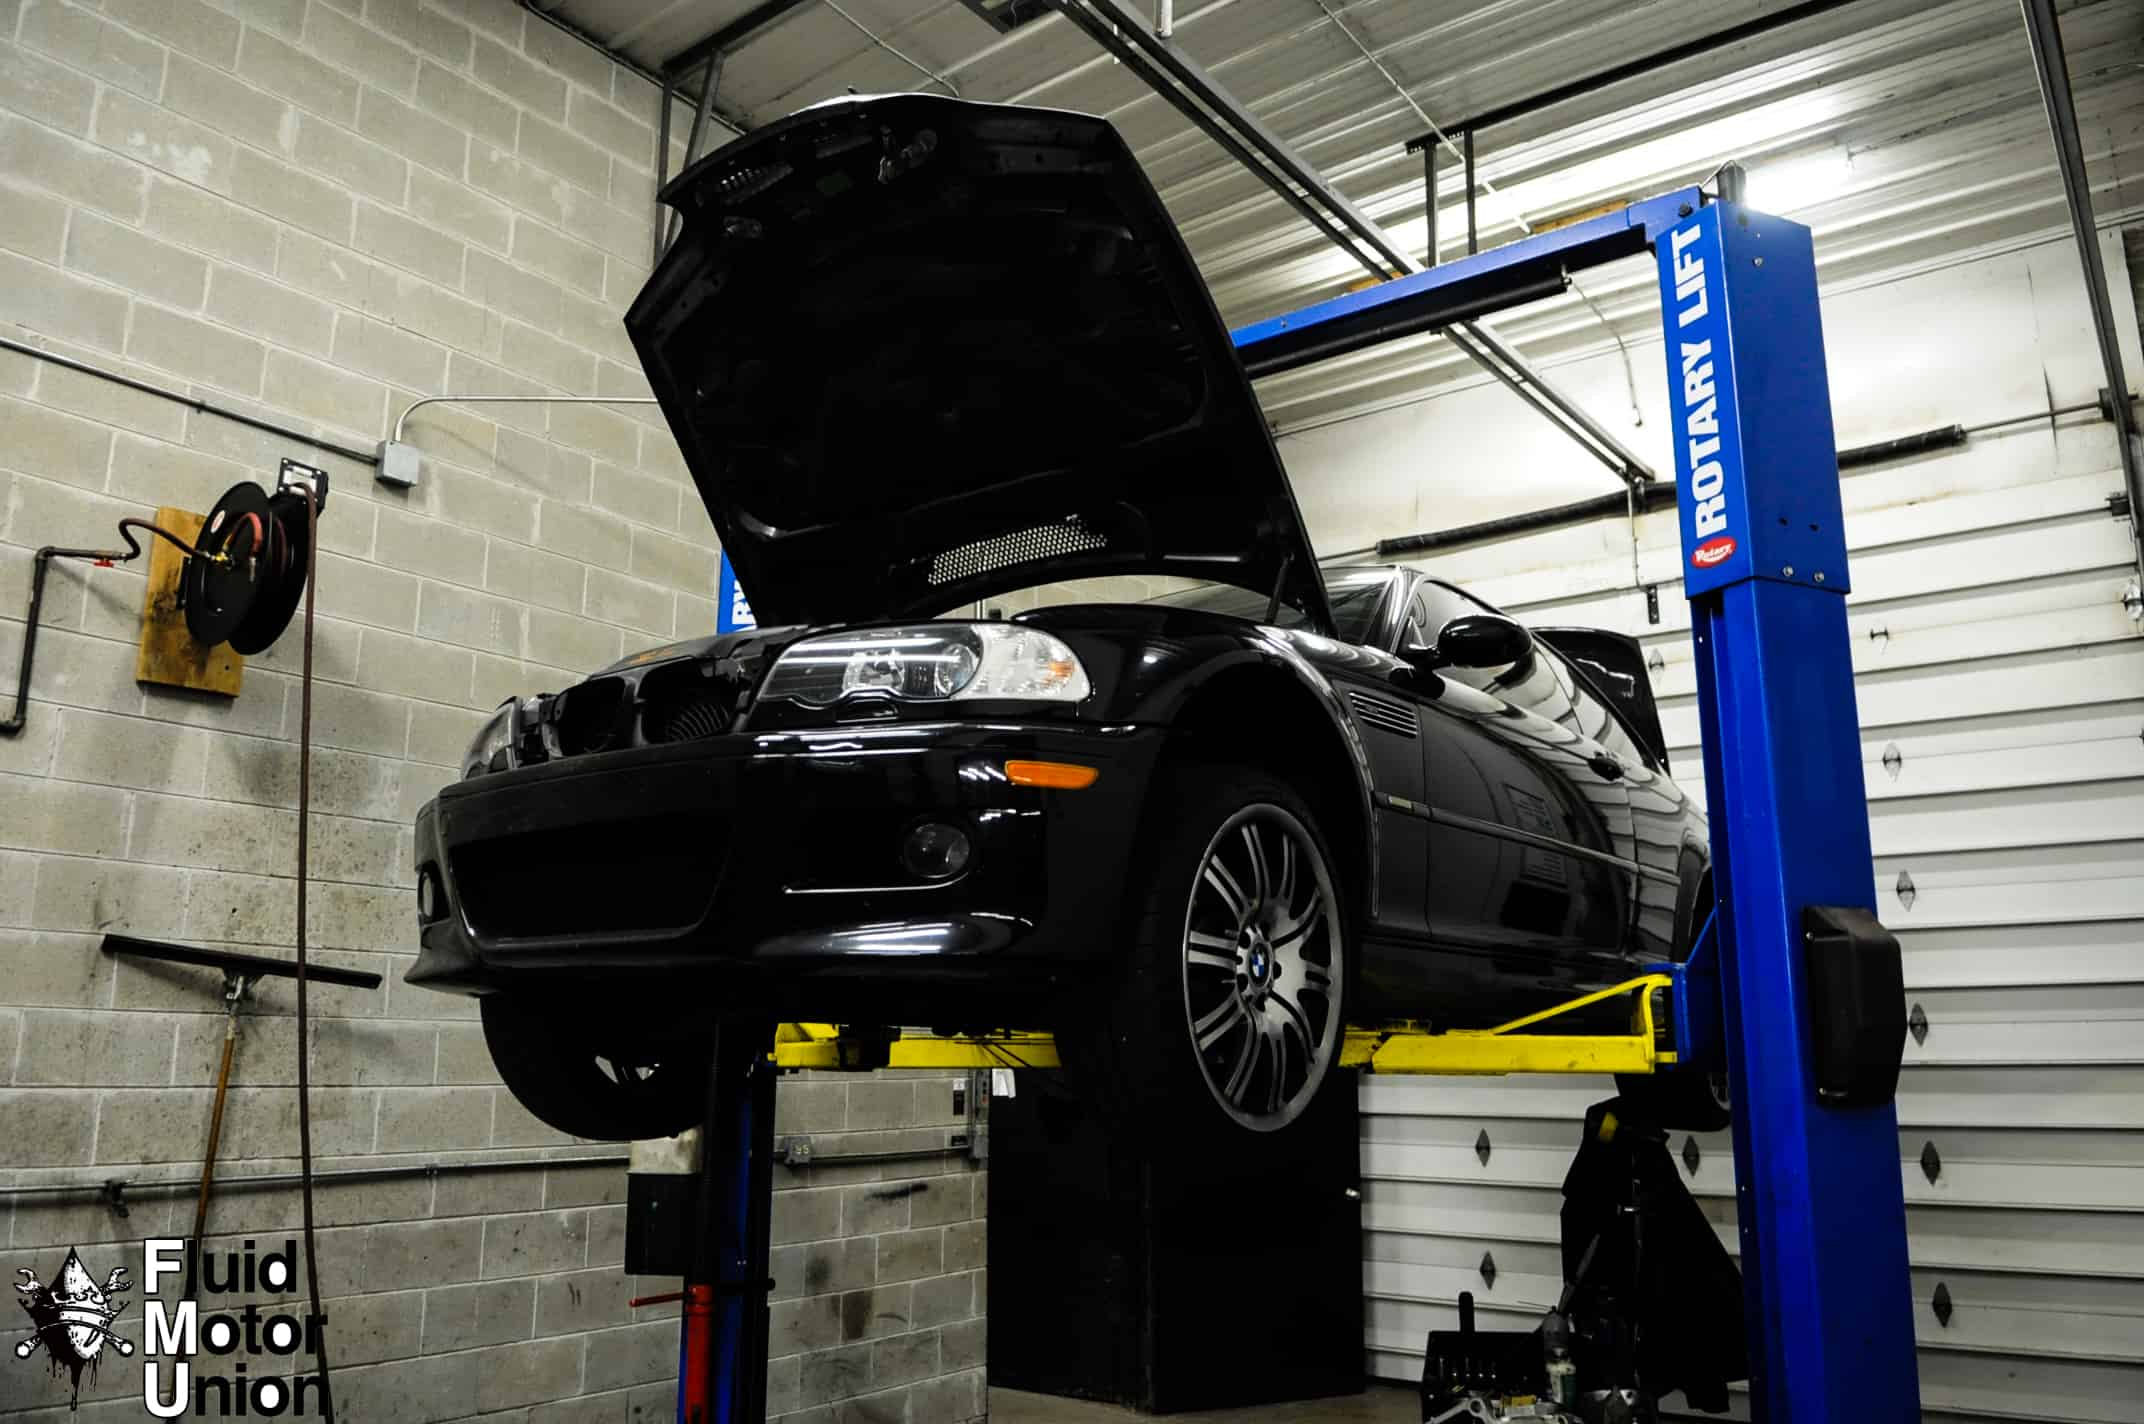 BMW E46 M3 Clutch Replacement using OE Sachs parts